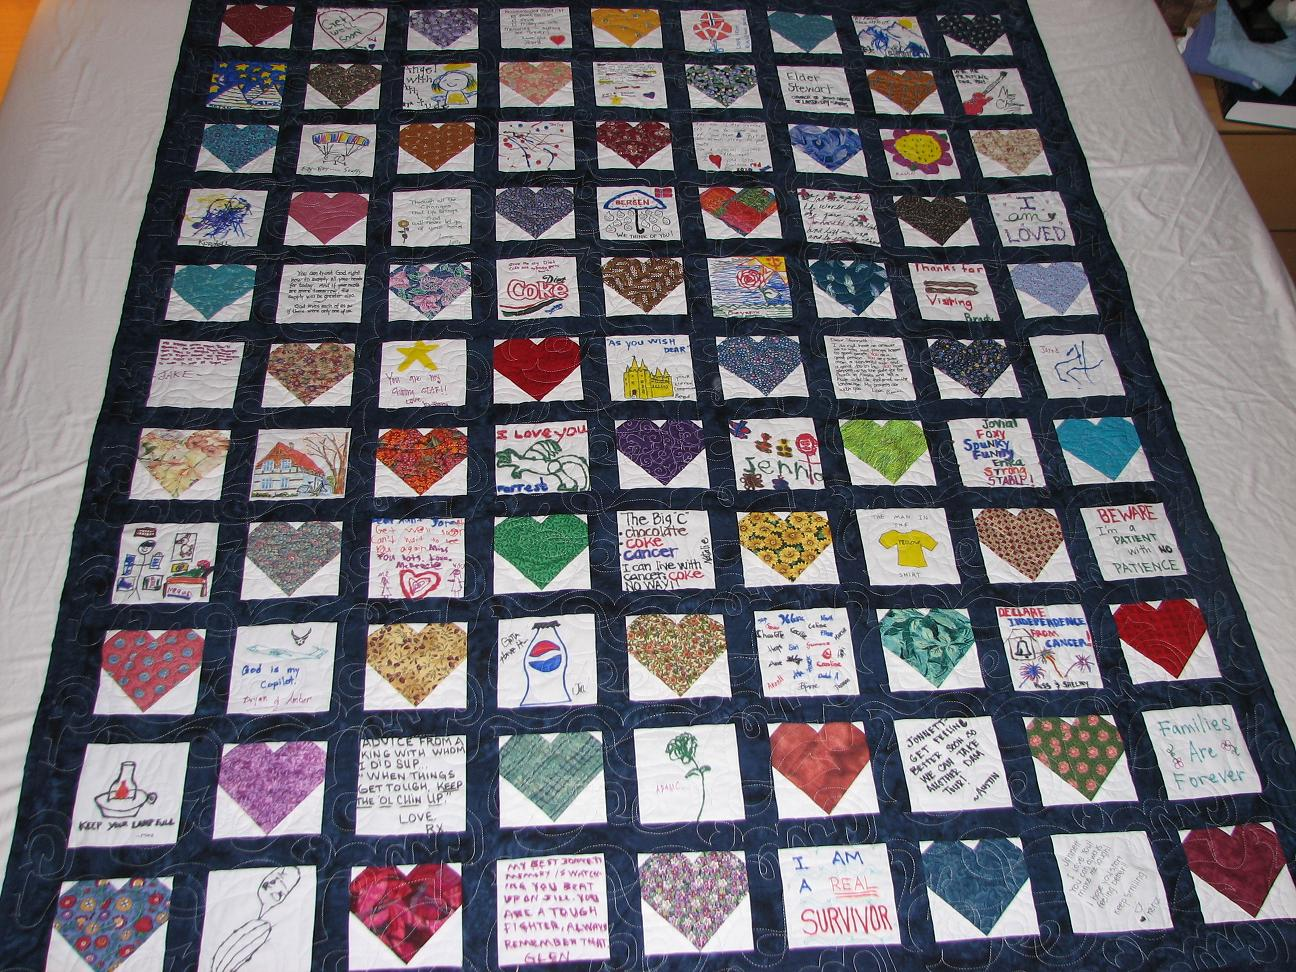 Free Family Memory Quilting Pattern Map Of World On Cloth